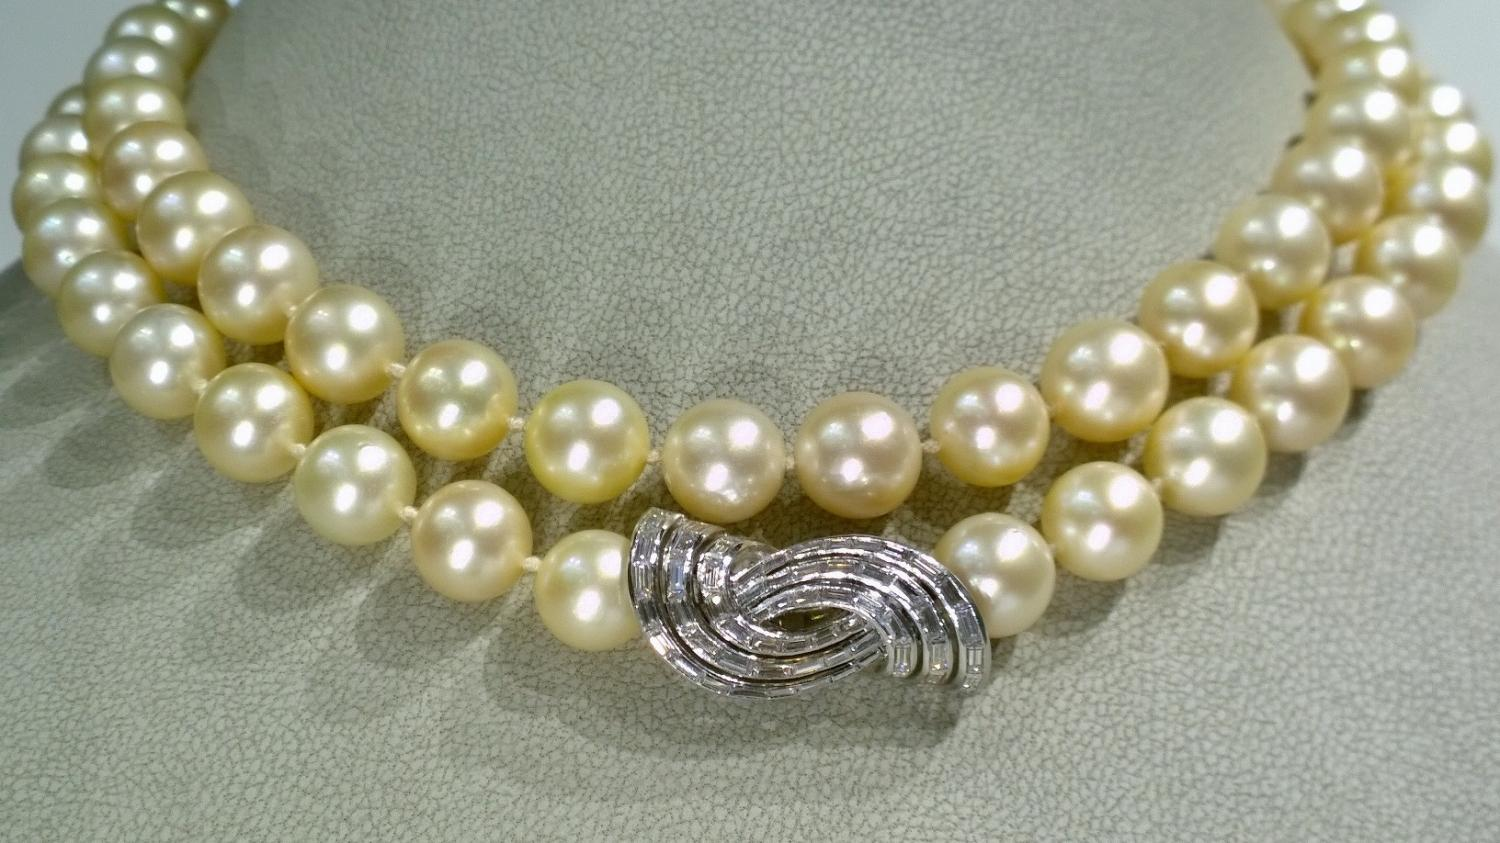 10mm Akoya Cultured Pearl Necklace